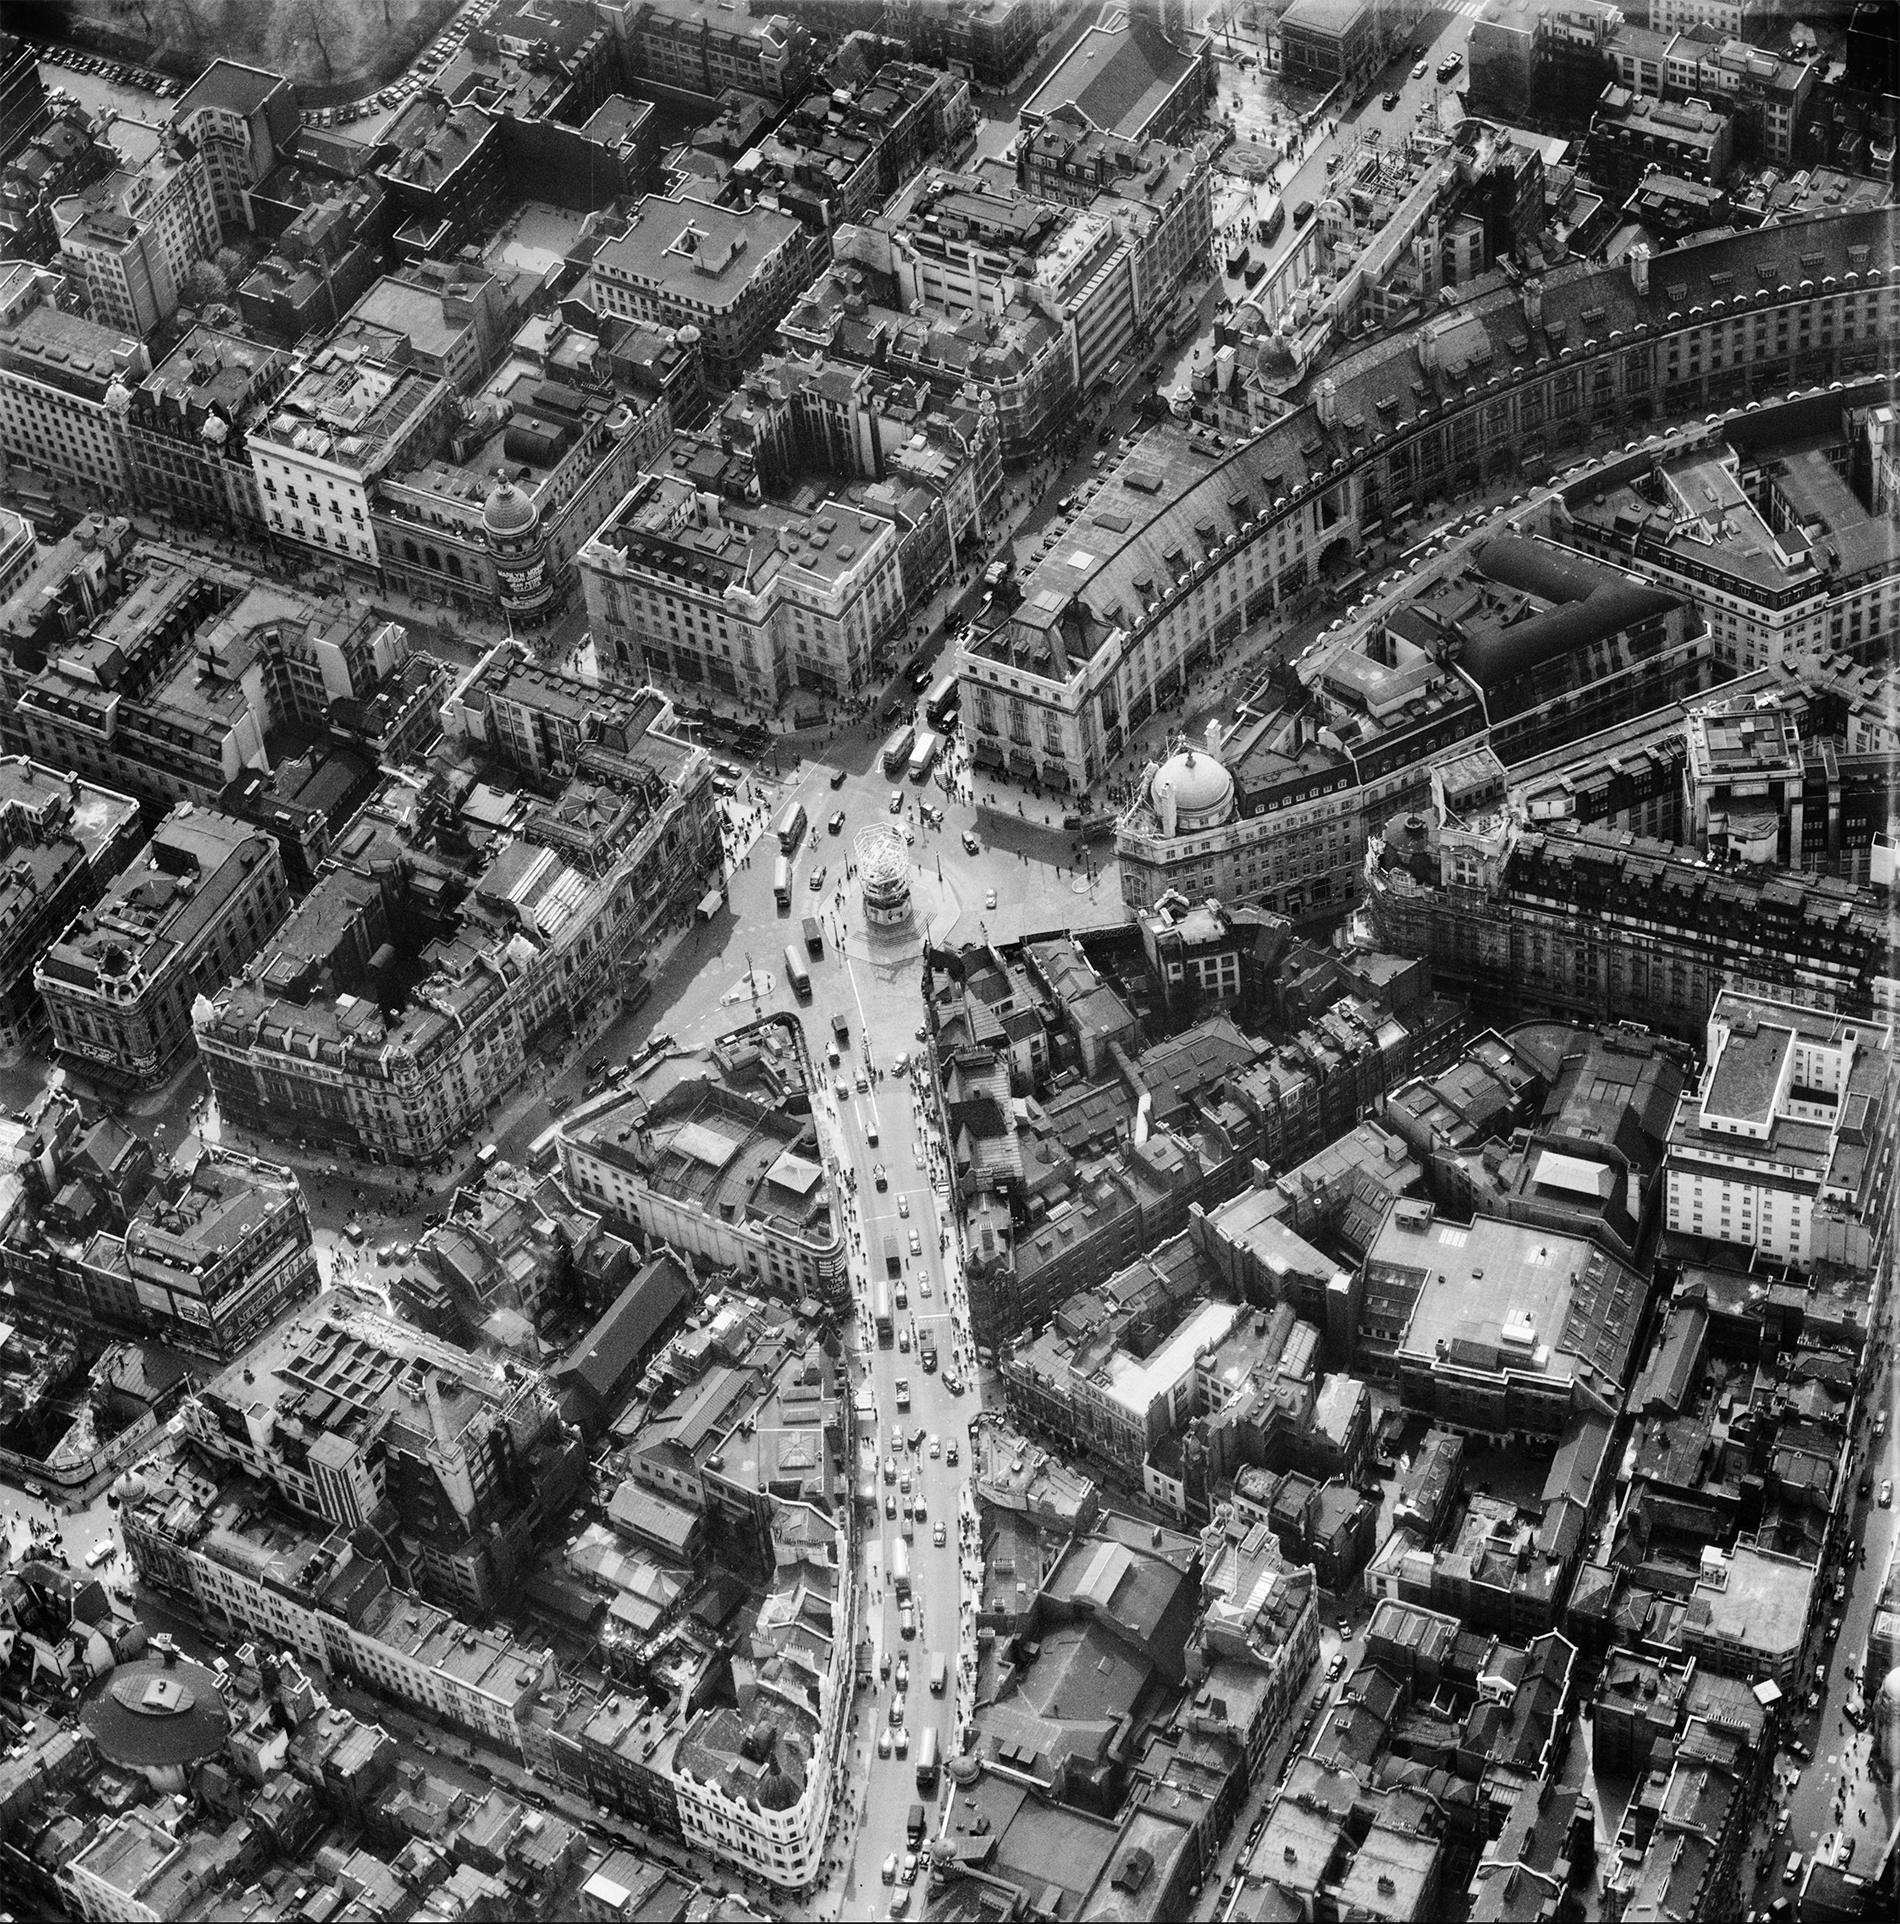 Piccadilly and Regent Street area of London in 1953. By Aerofilms Ltd